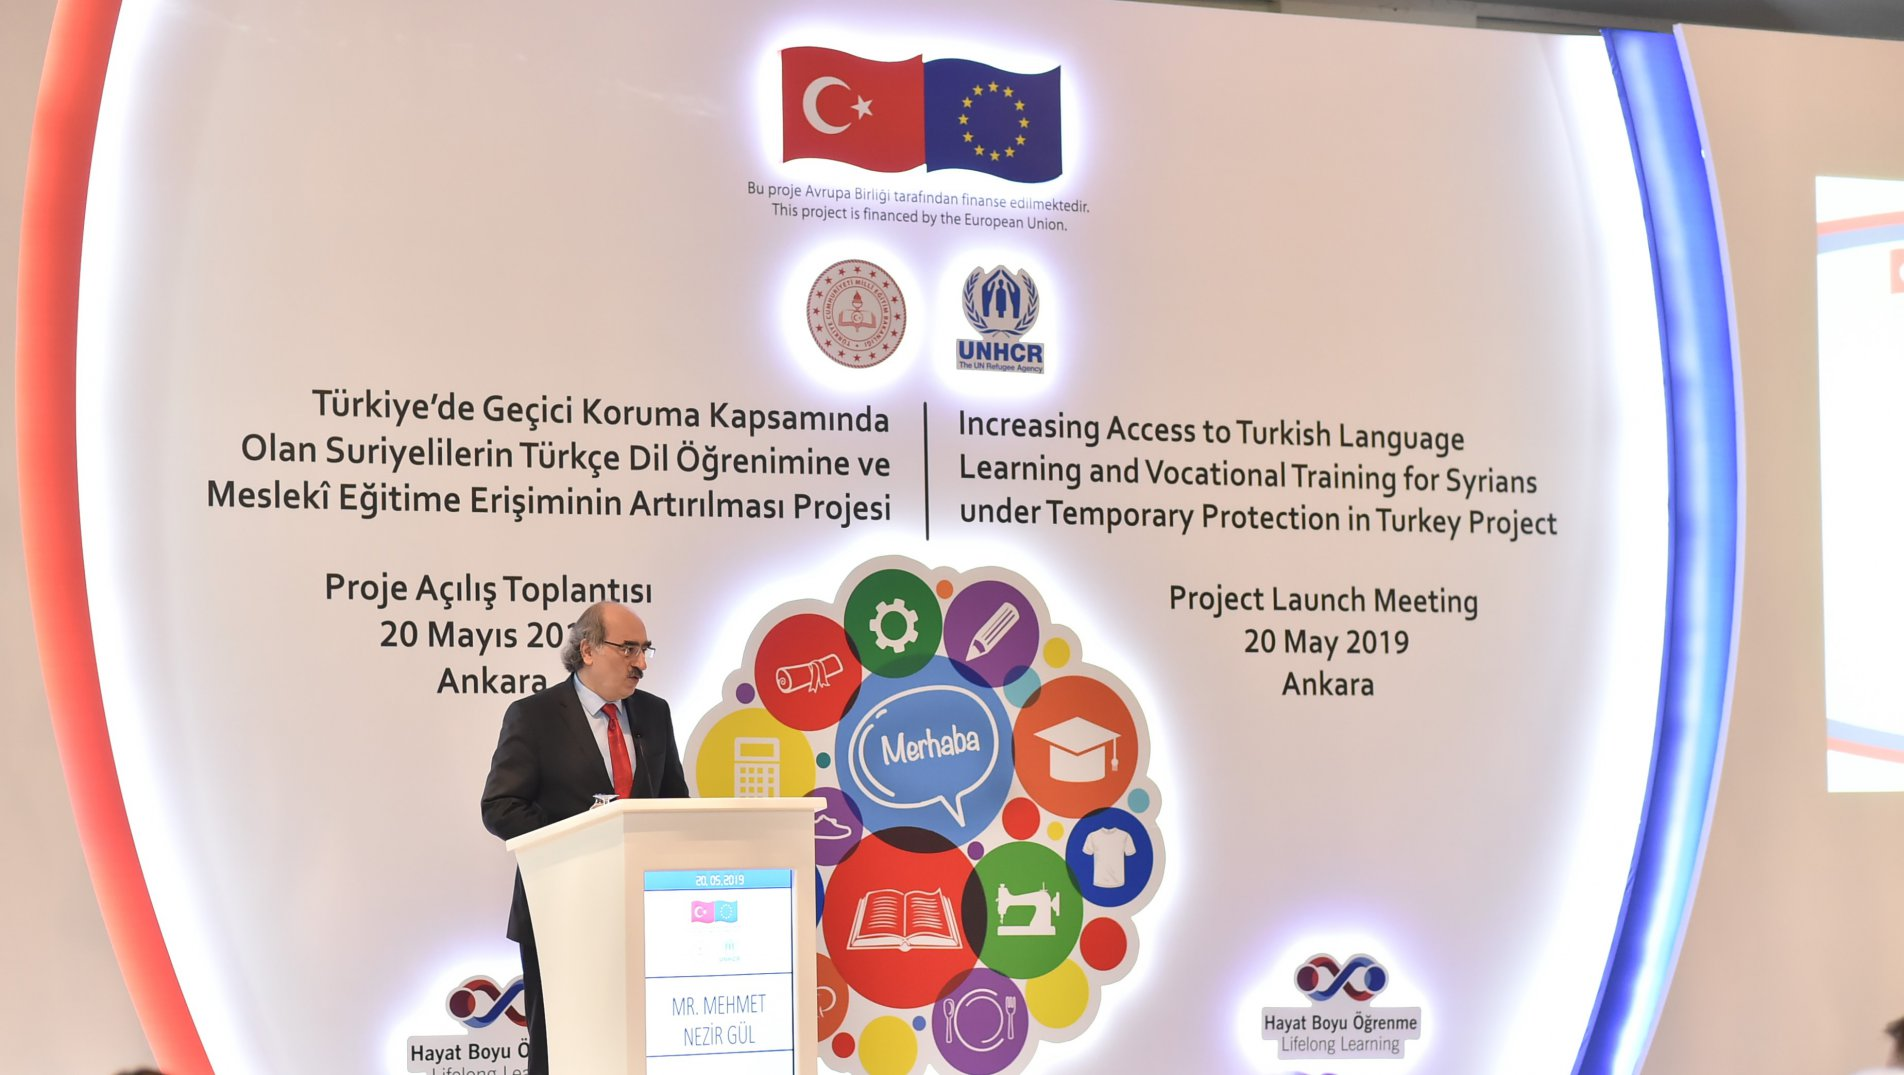 Increasing Access to Turkish Language Learning and Vocational Training for Syrians under Temporary Protection in Turkey Project